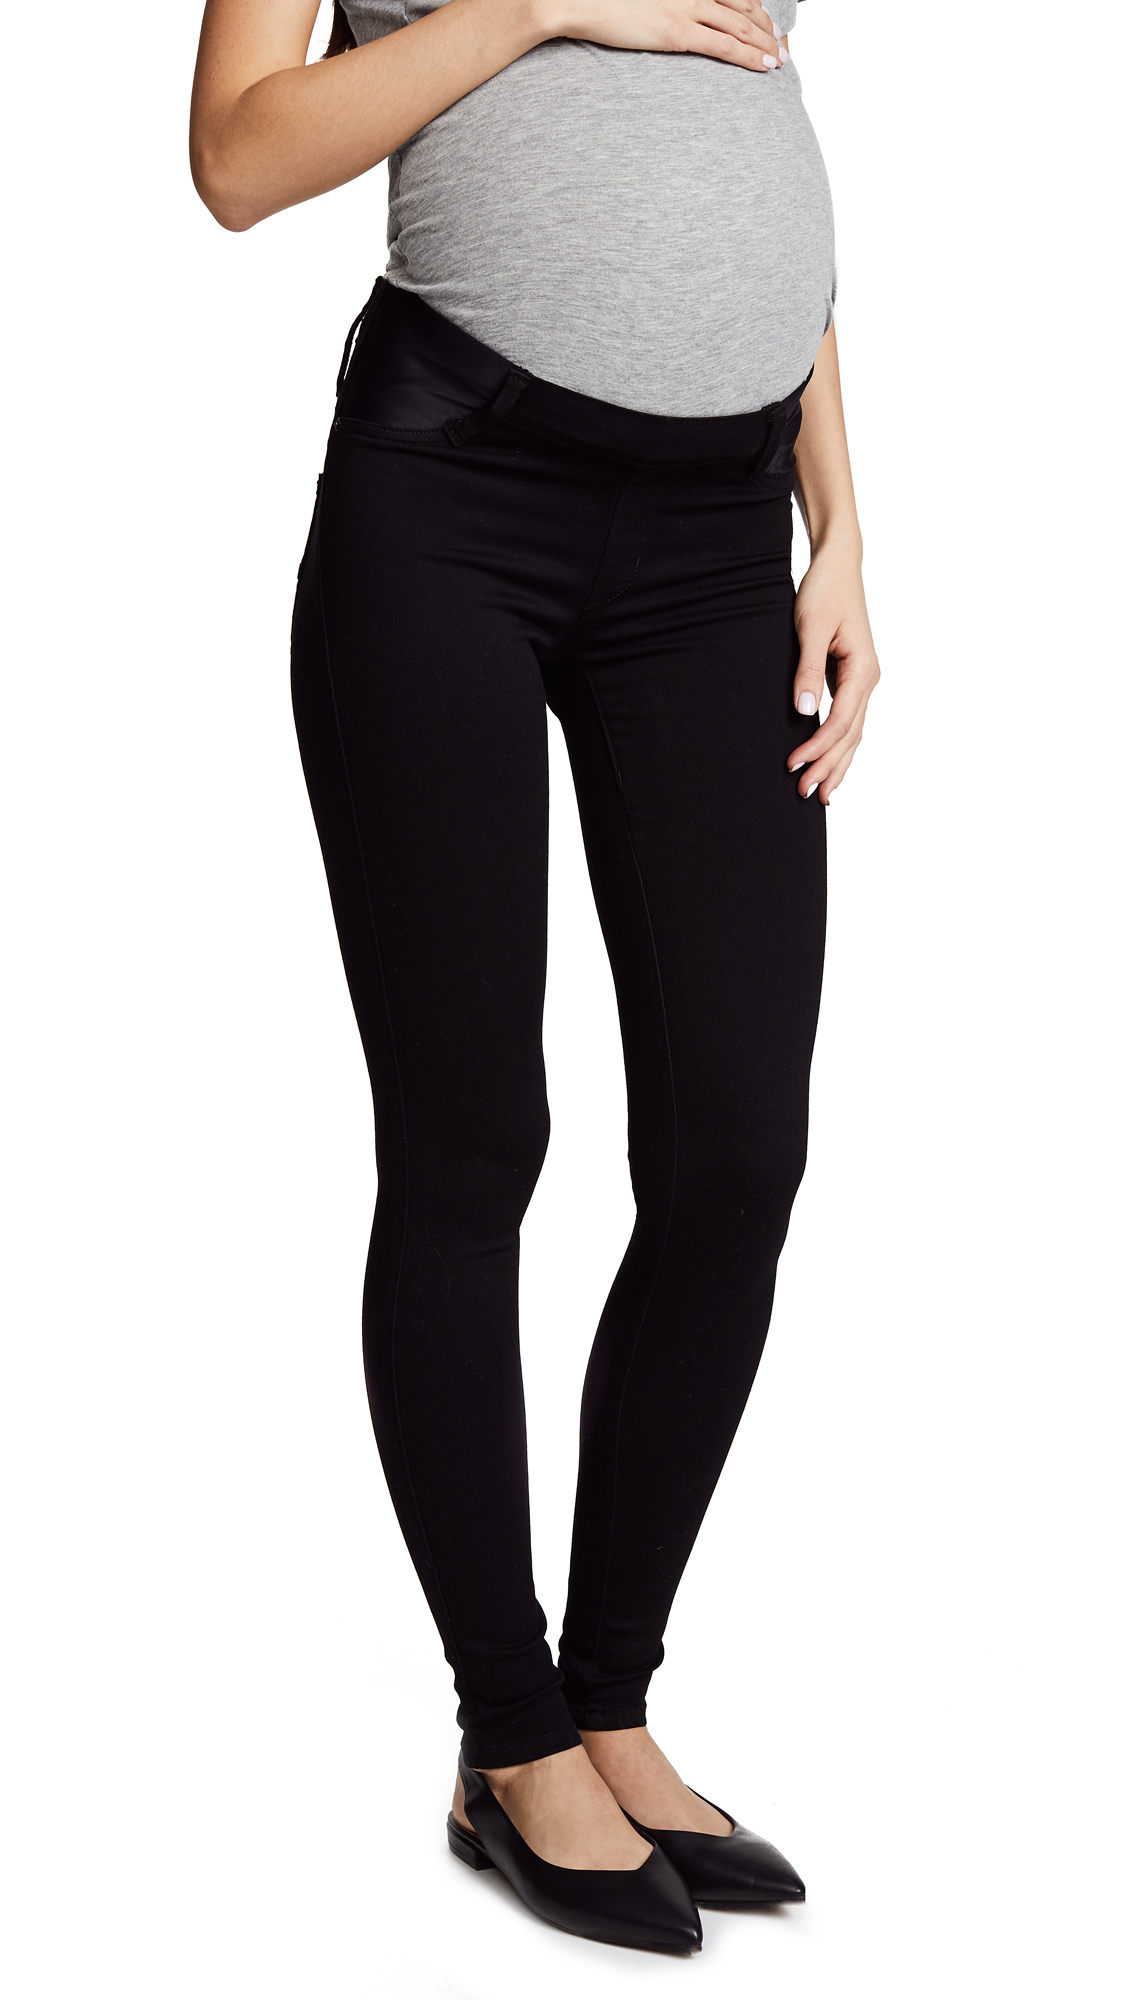 Twiggy Maternity Under Belly Pull On Jeans